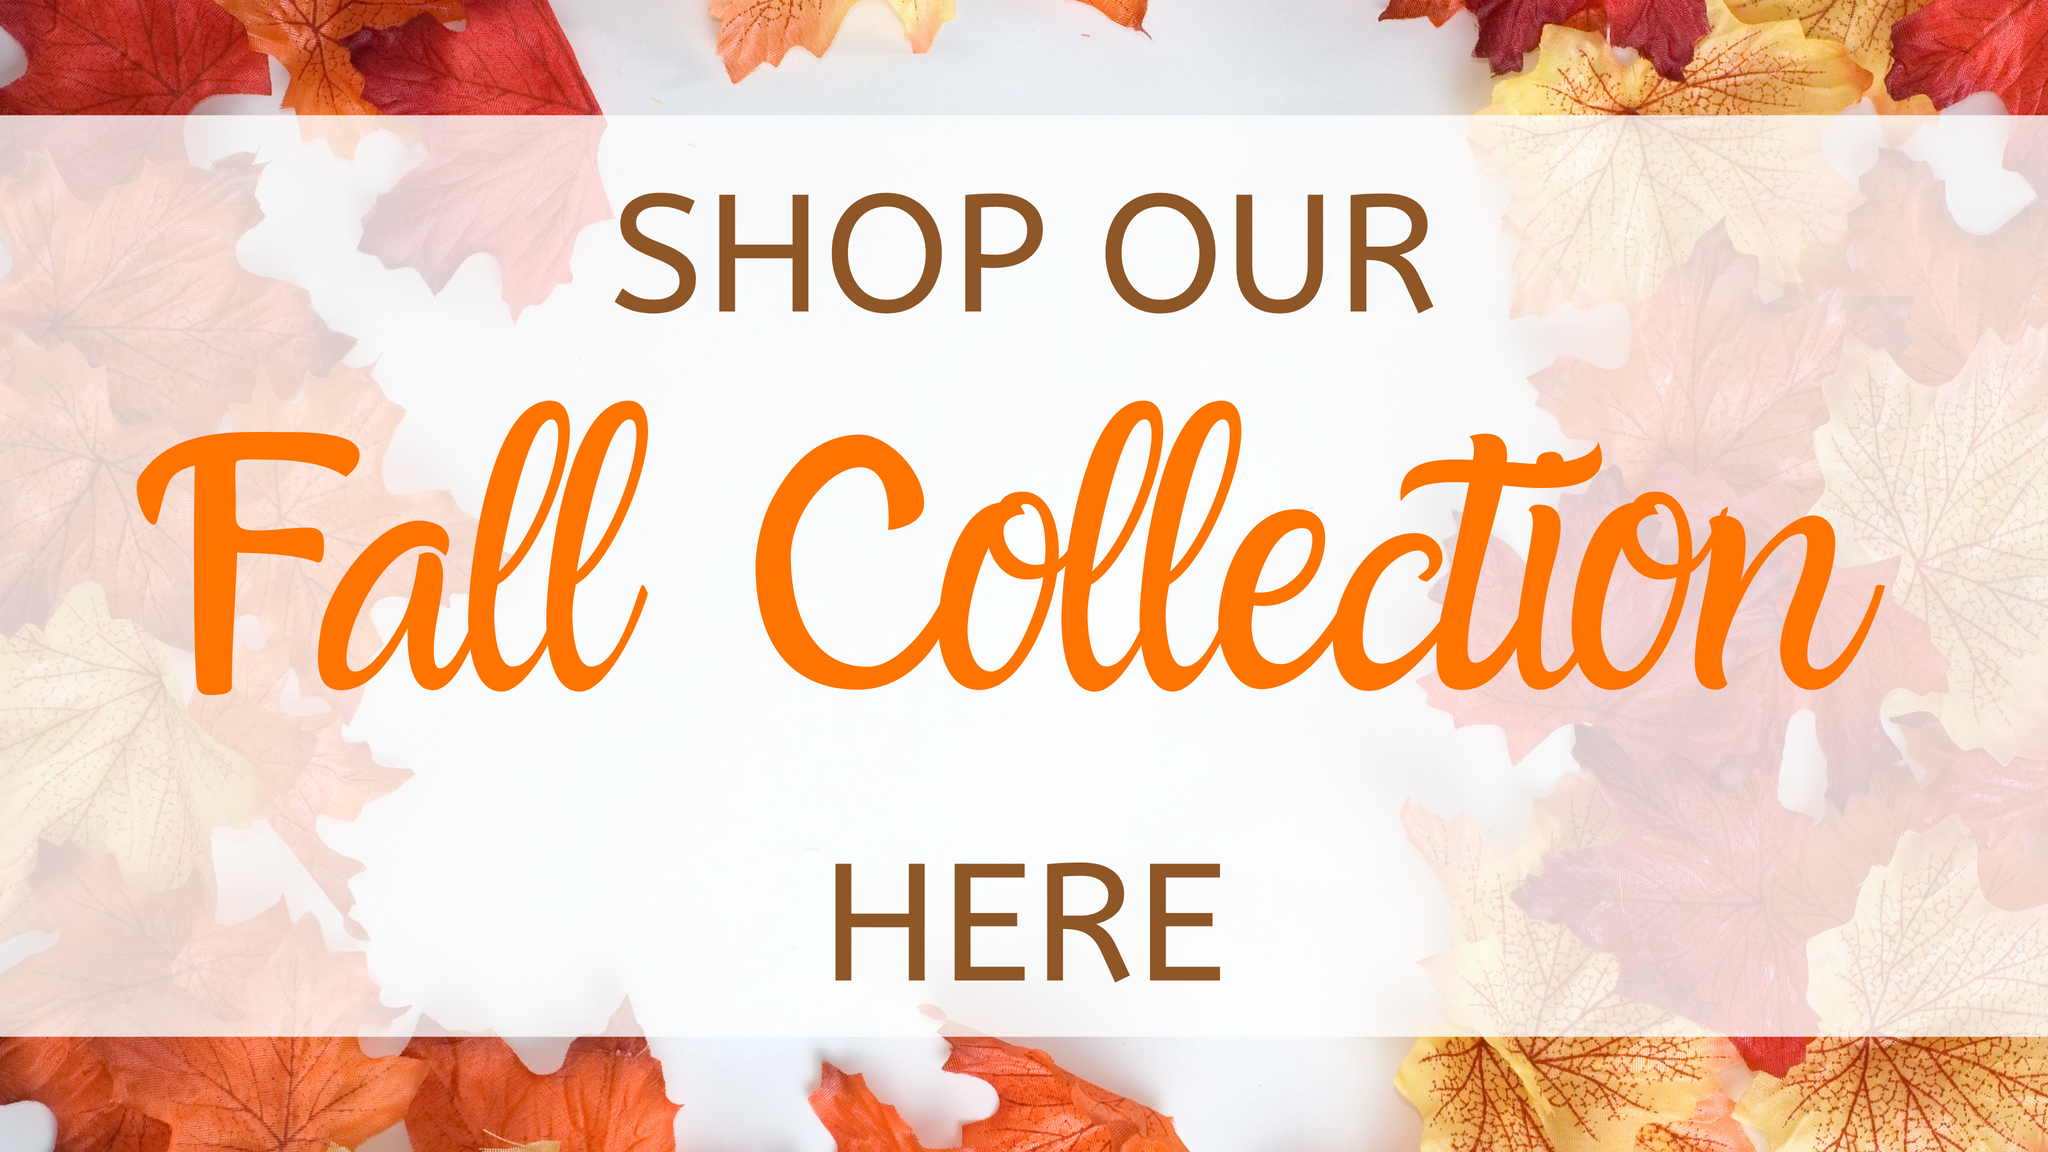 Shop Our Entire Fall Collection